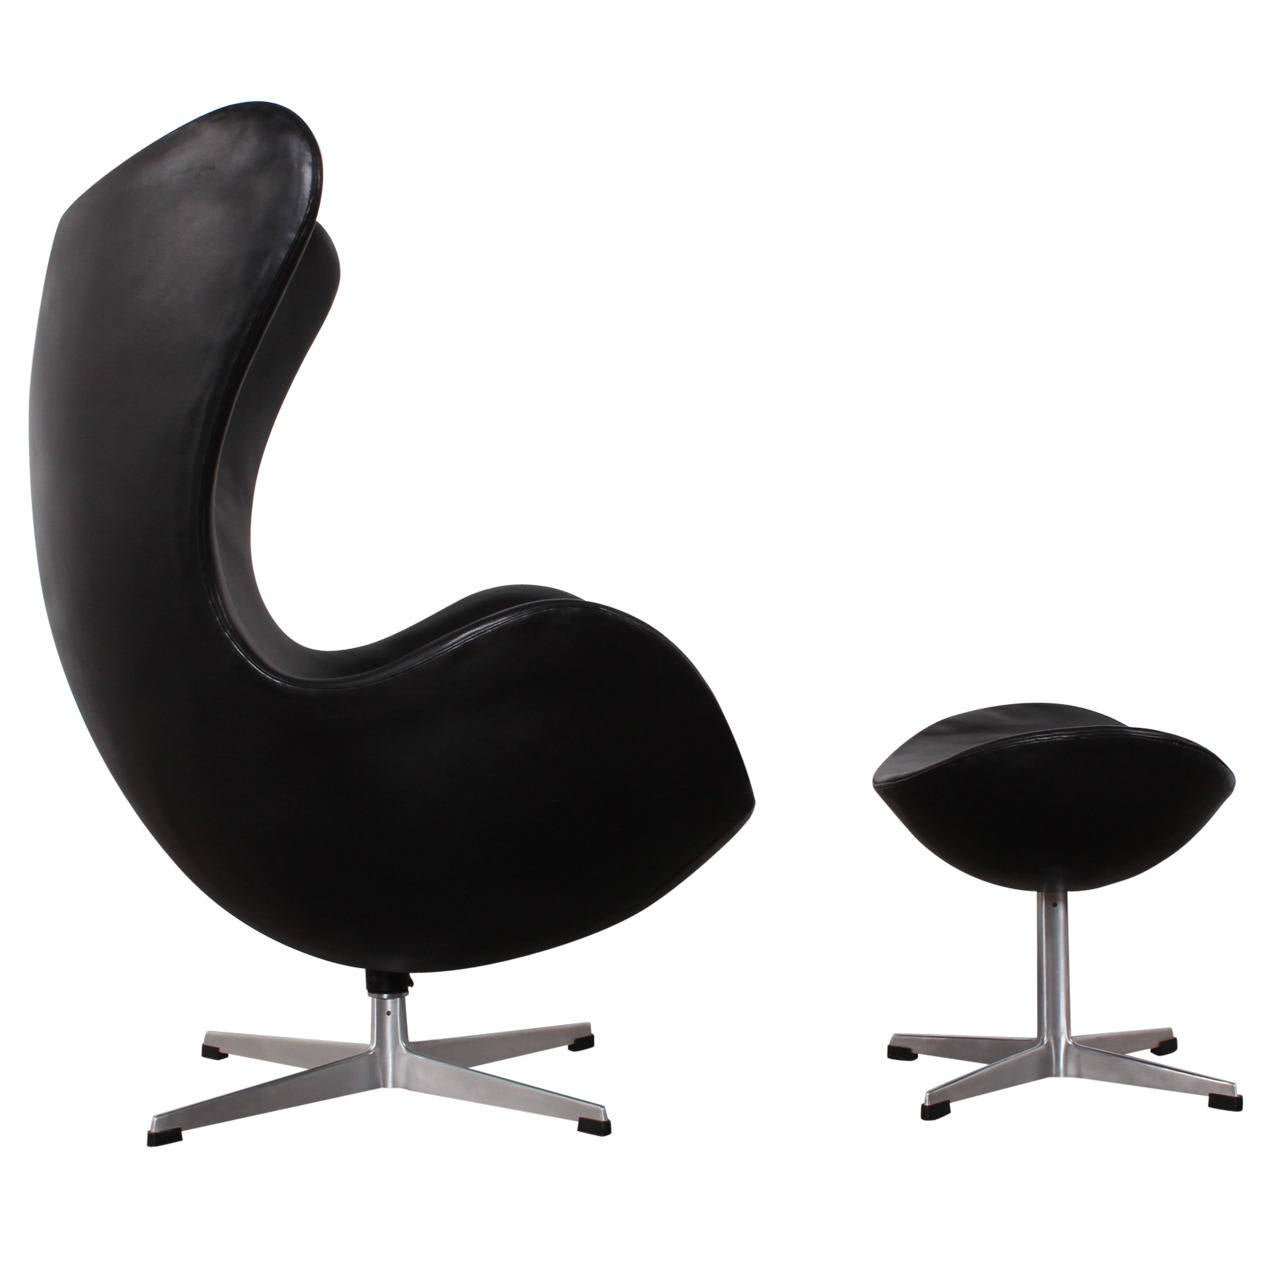 egg chair and ottoman by arne jacobsen in original leather. Black Bedroom Furniture Sets. Home Design Ideas